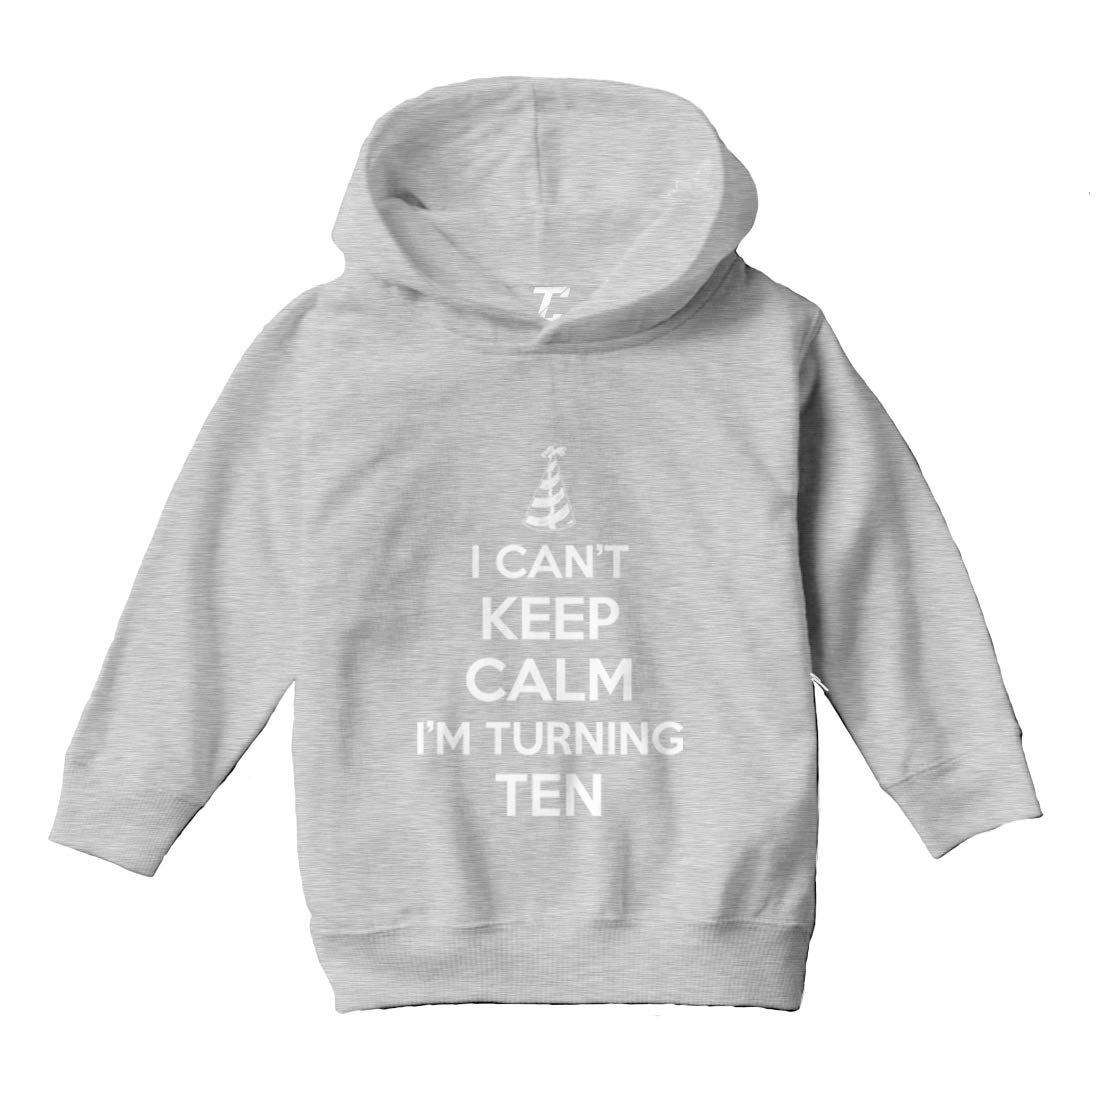 Tcombo I Cant Keep Calm Im Turning Ten Toddler//Youth Fleece Hoodie